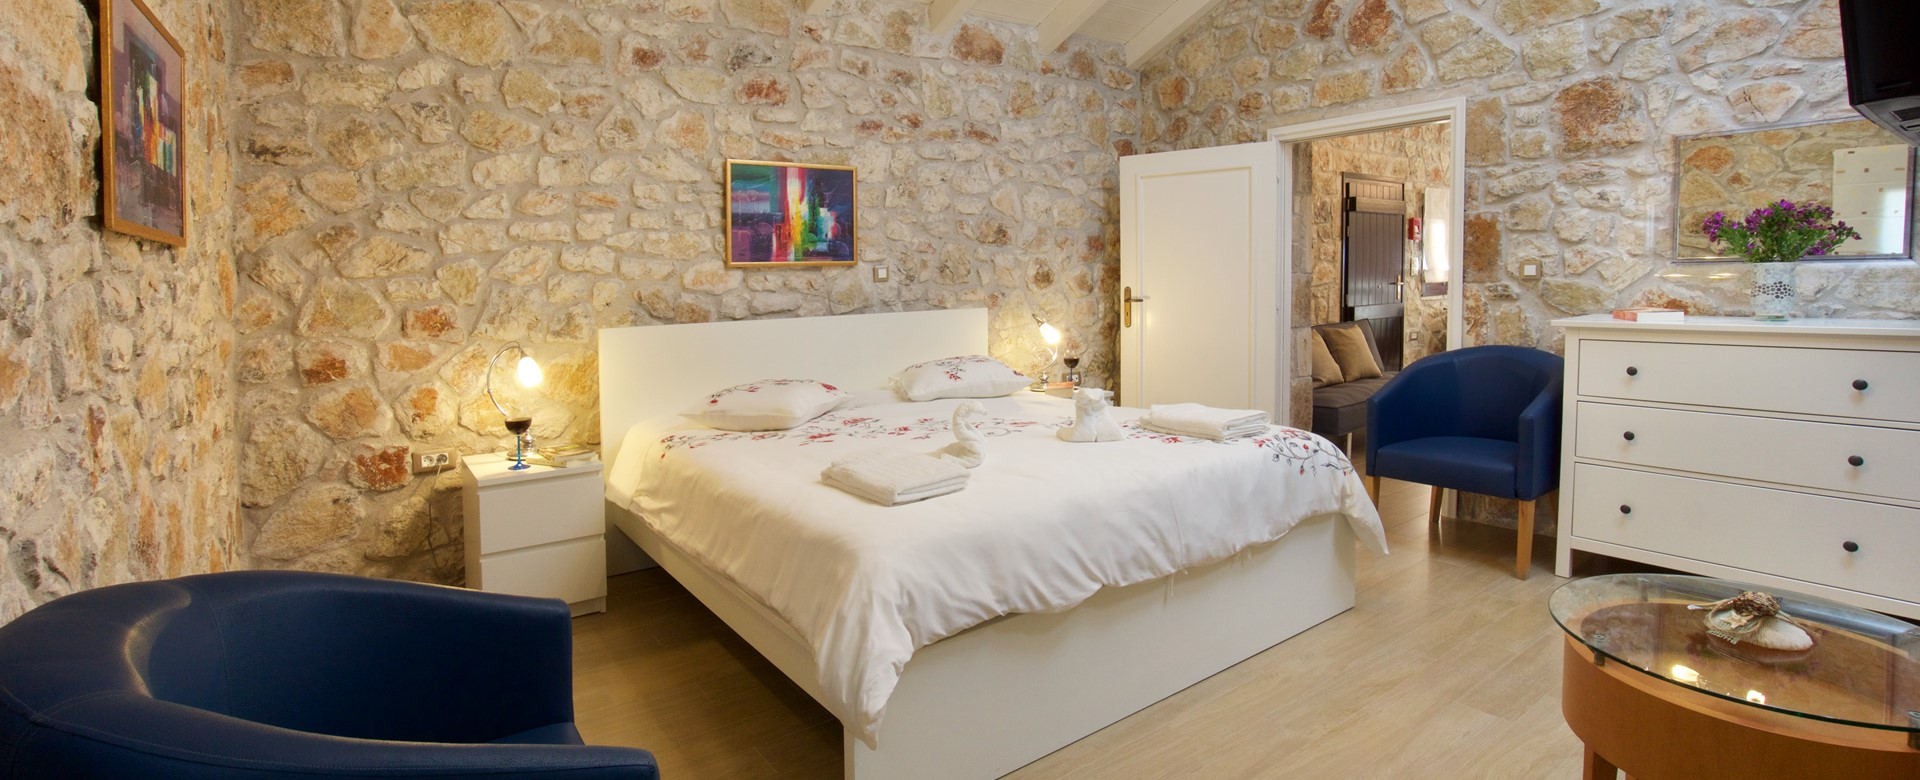 Exquisitely decorated master bedroom complete with characterful stone walls at Villa Theano, Sami, Kefalonia, Greek Islands